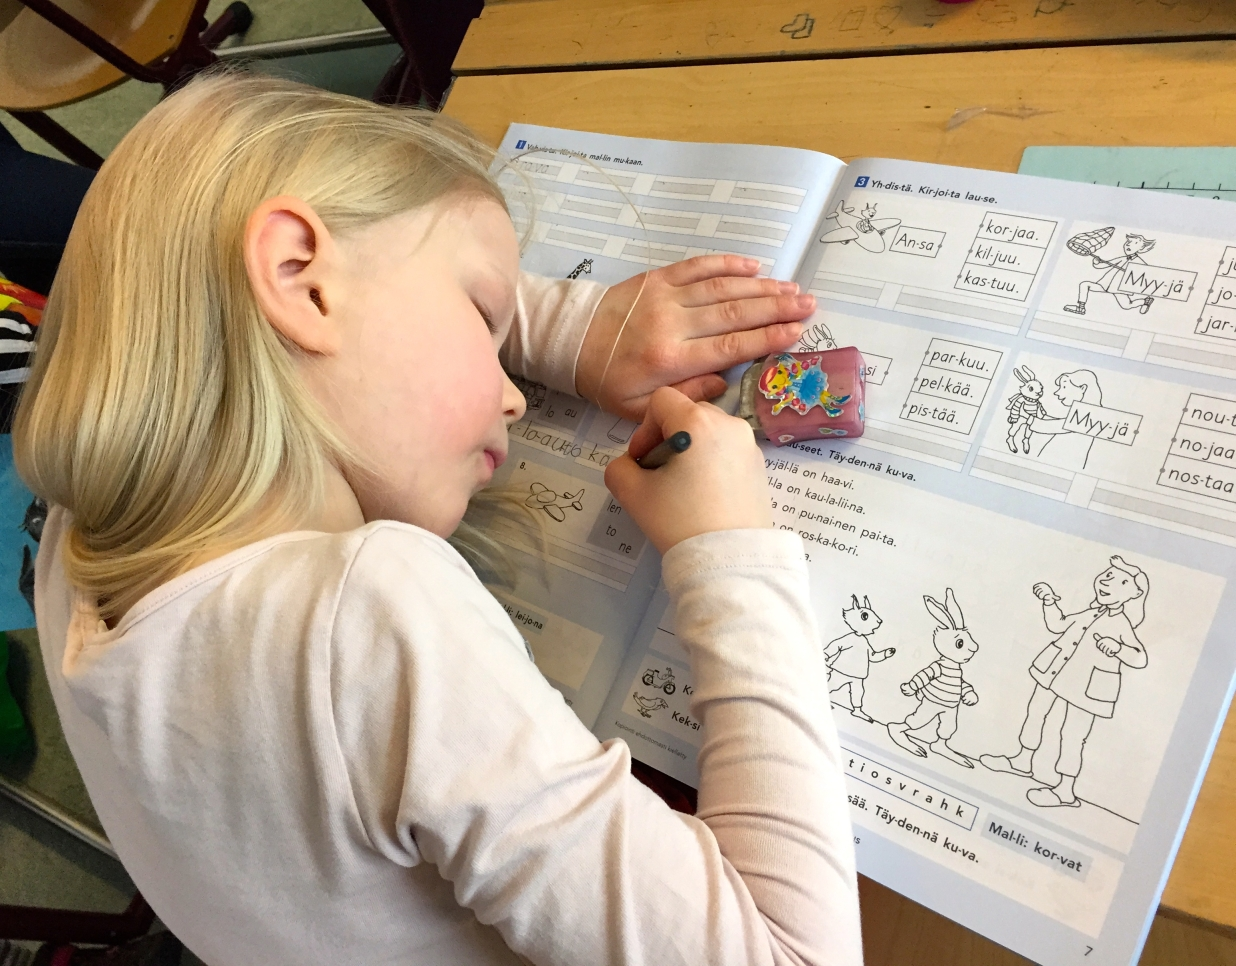 Kids are given books free of charge. High-quality workbooks are used much more than photocopies of worksheets.